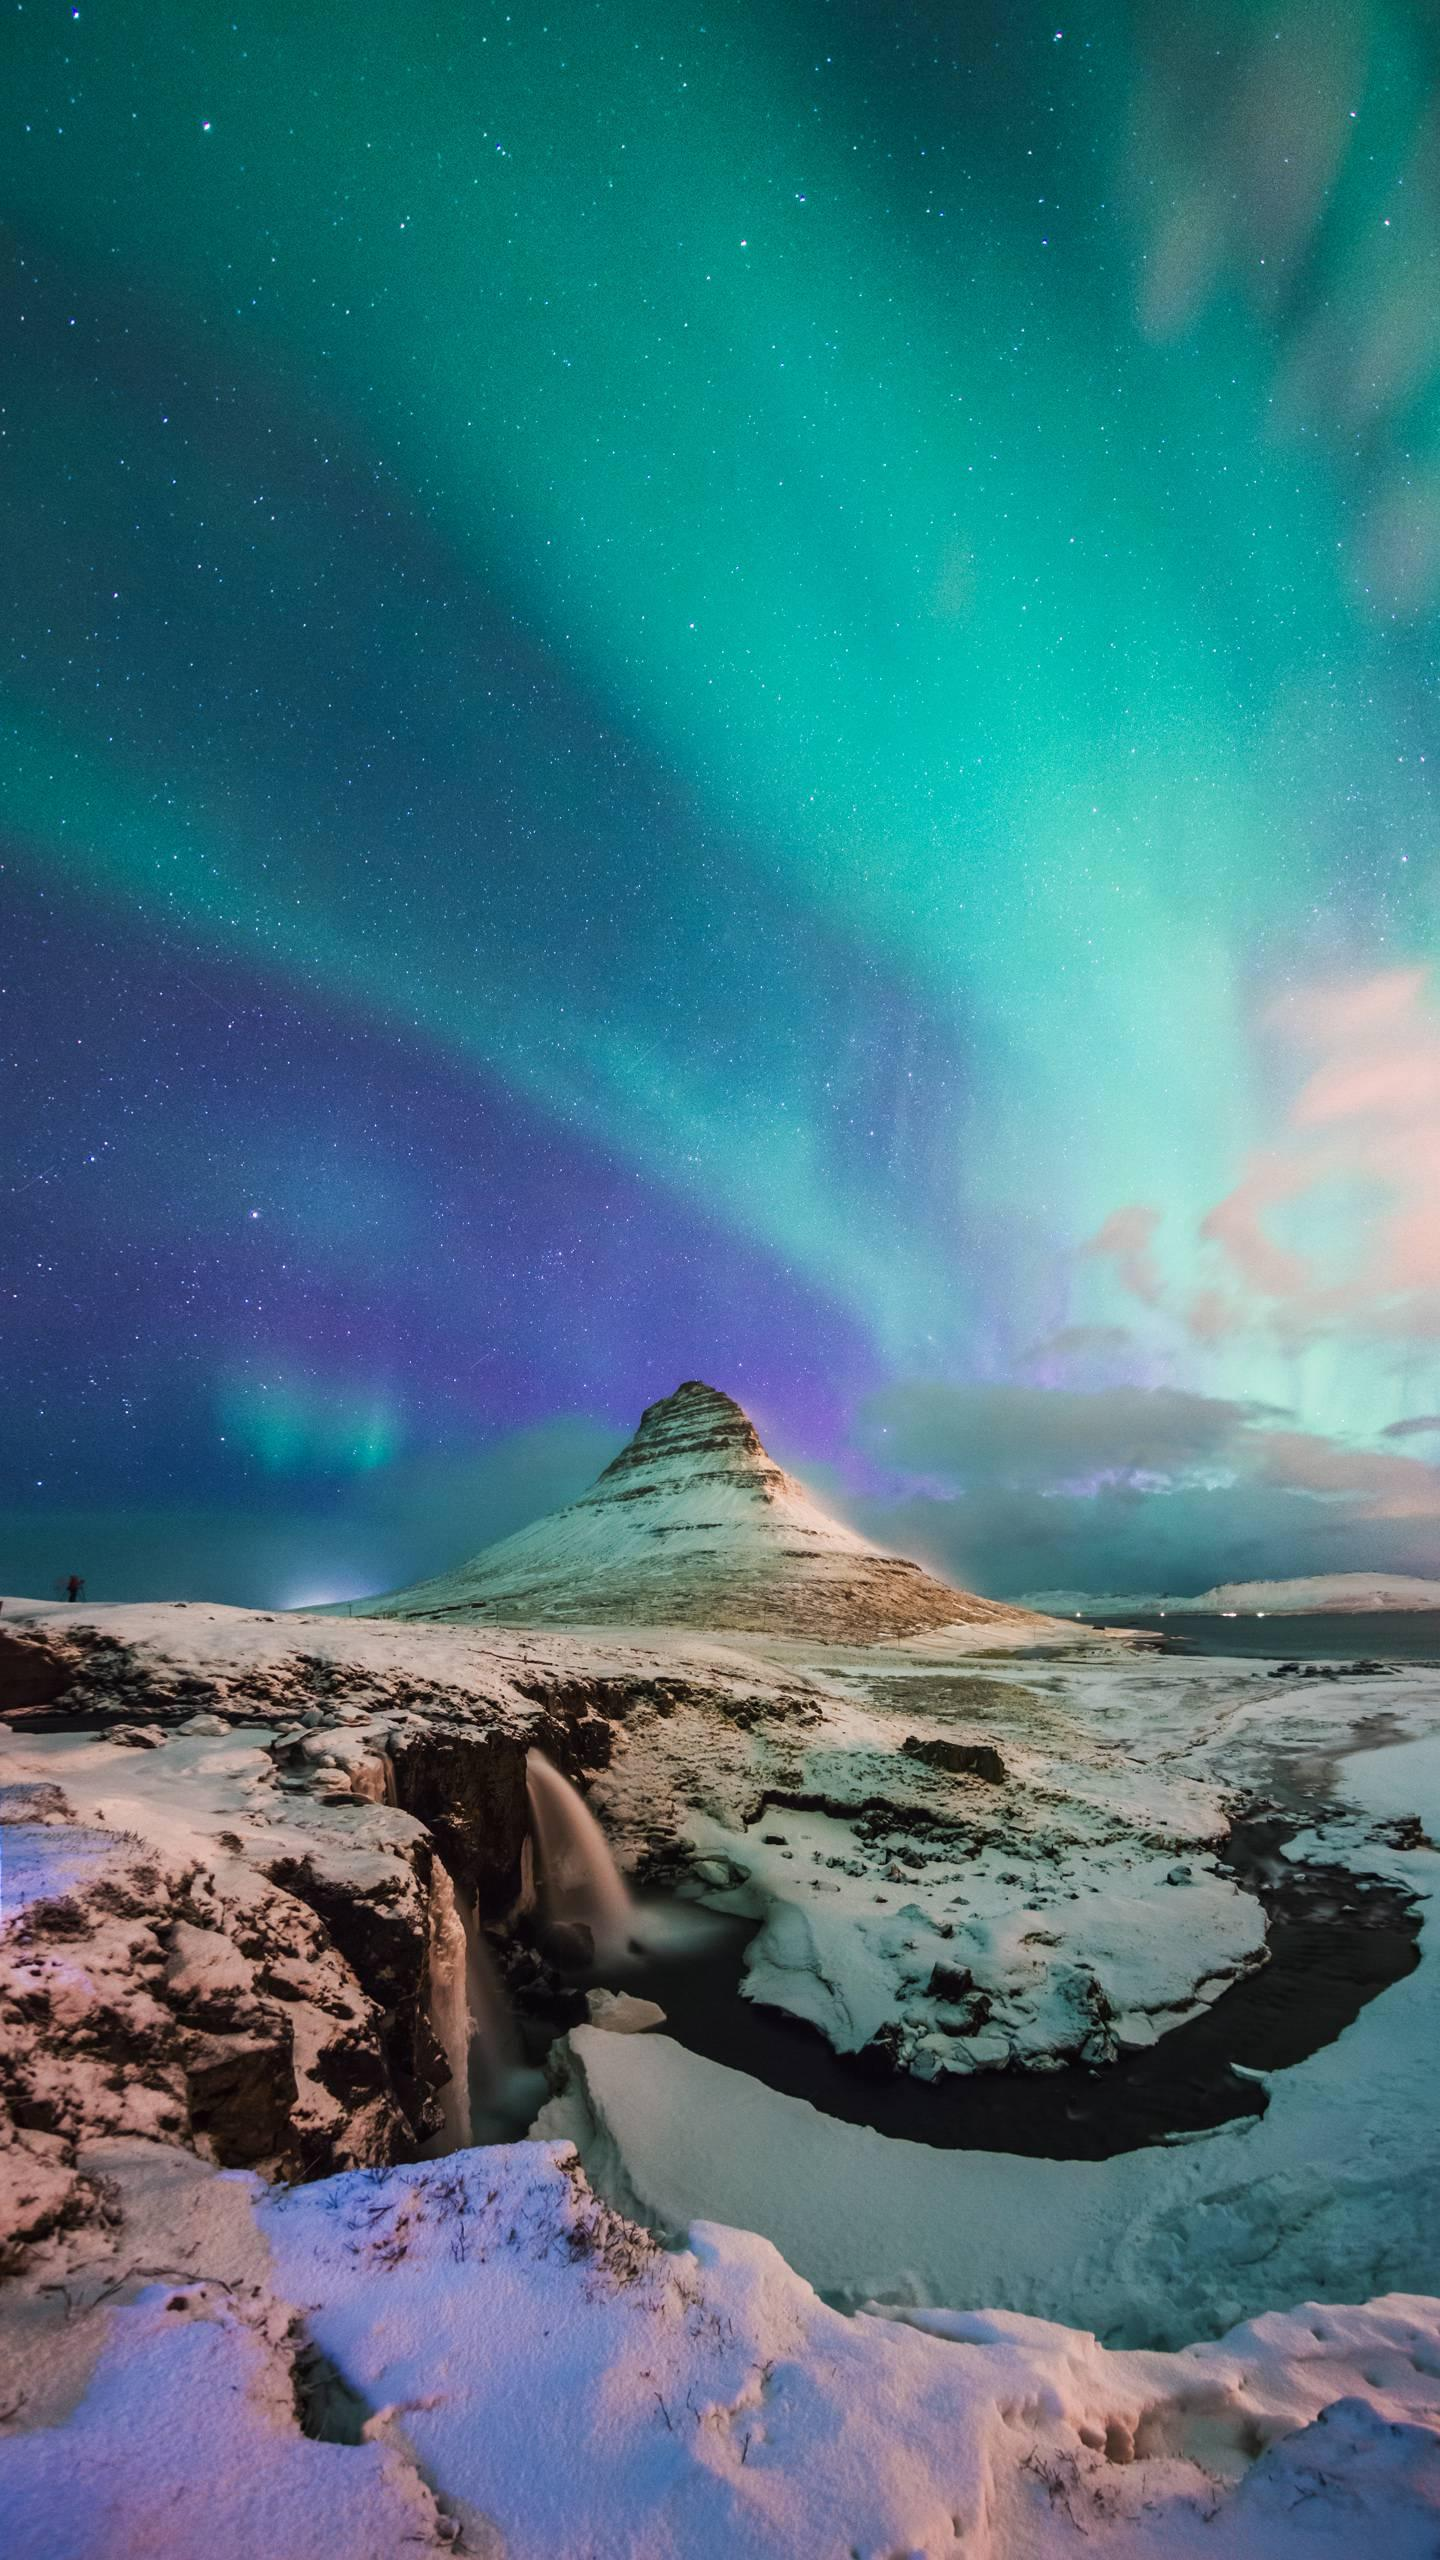 The color of the aurora. In addition to the green aurora, have you seen other colors?